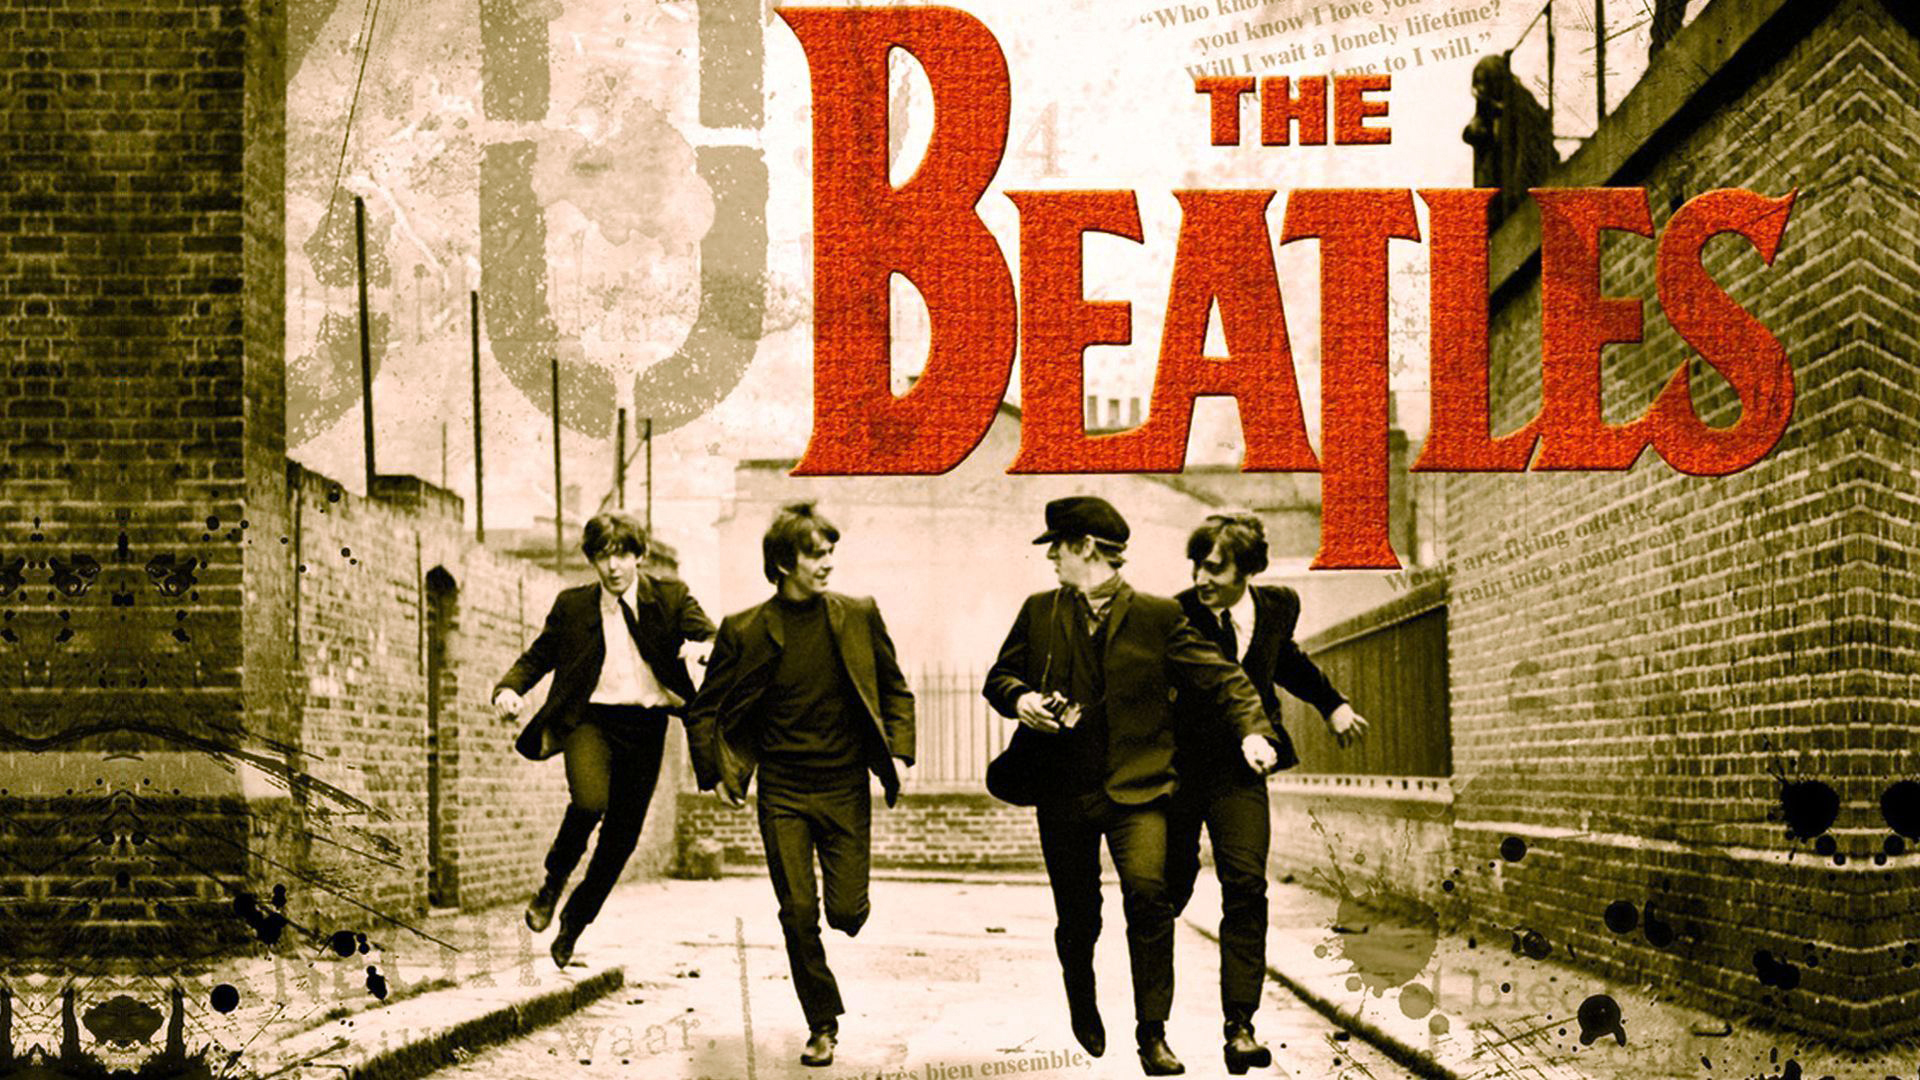 The beatles pchdwallpaper pchdwallpaper voltagebd Choice Image